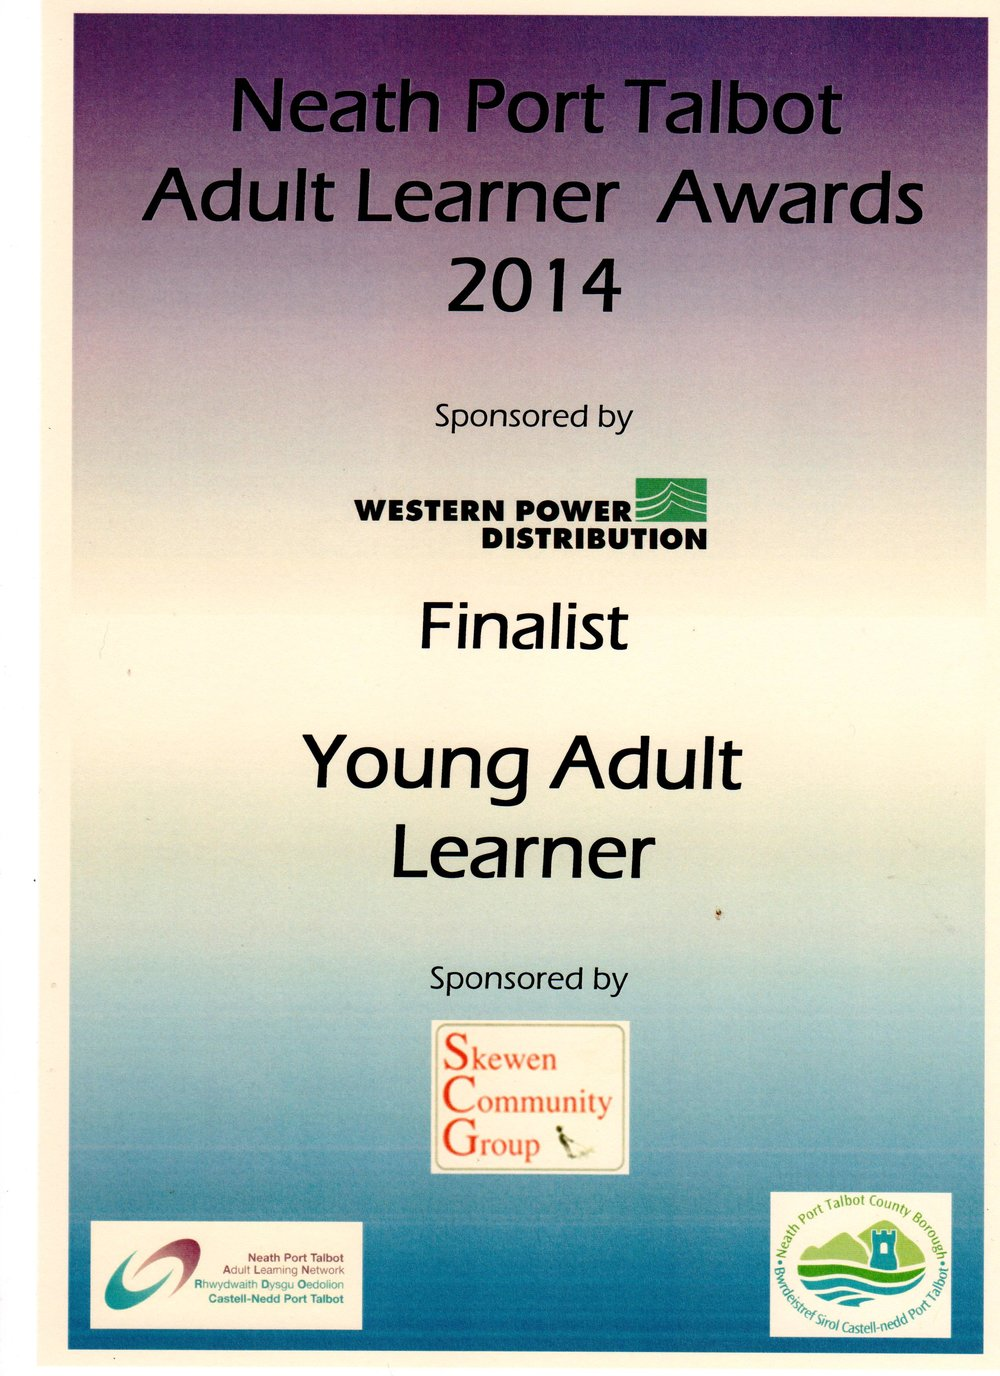 Finalist award for my efforts to start my photography career within the adult community learning group, Neath Port Talbot